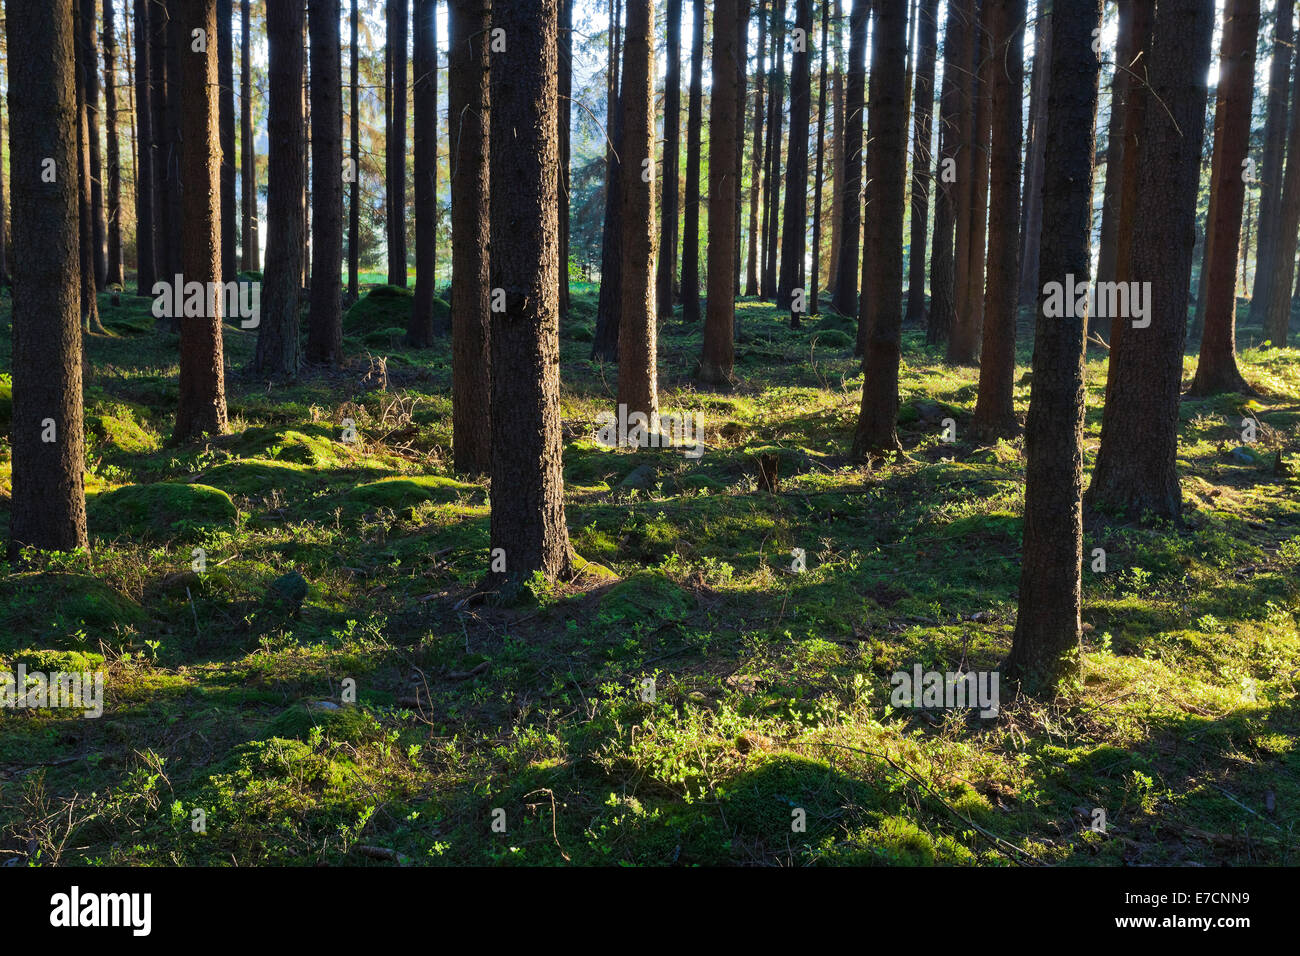 The primeval forest with mossed ground - Stock Image